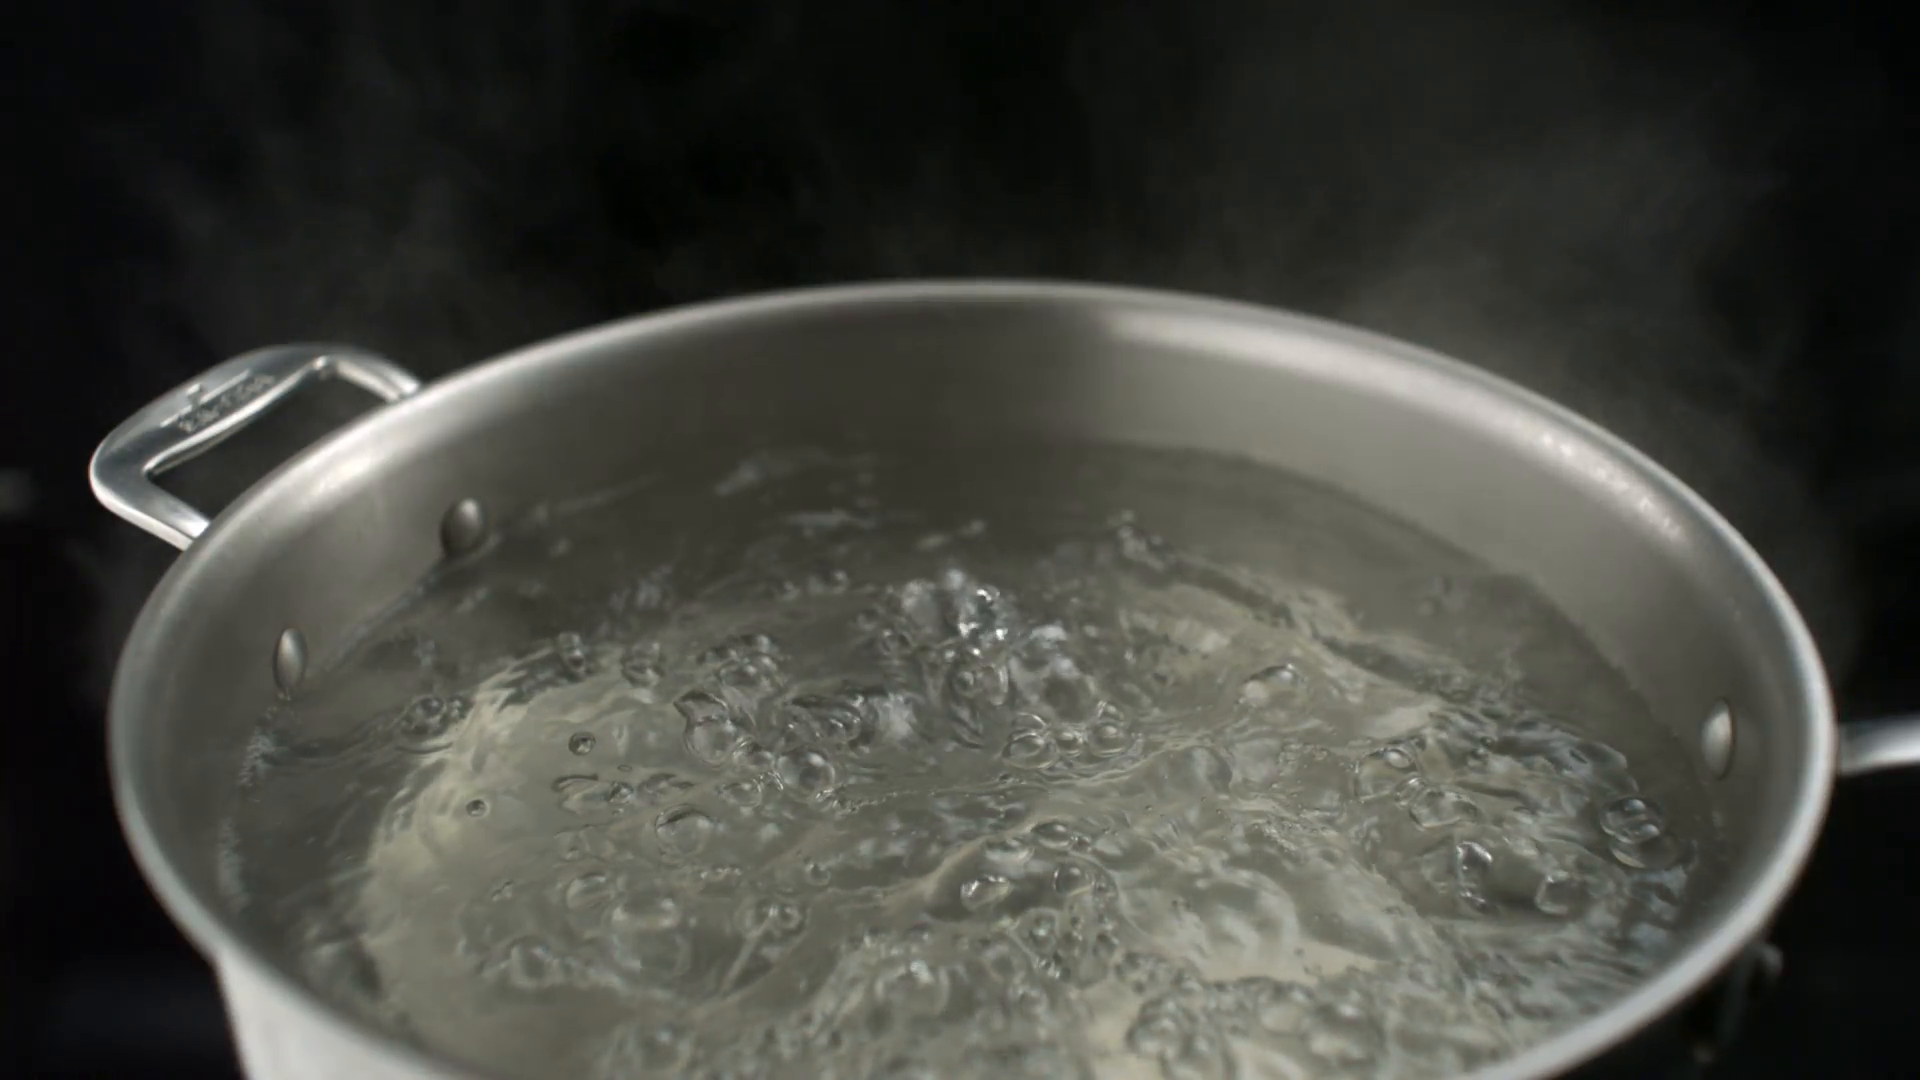 Boiling water in pot, Slow Motion Stock Video Footage - Videoblocks